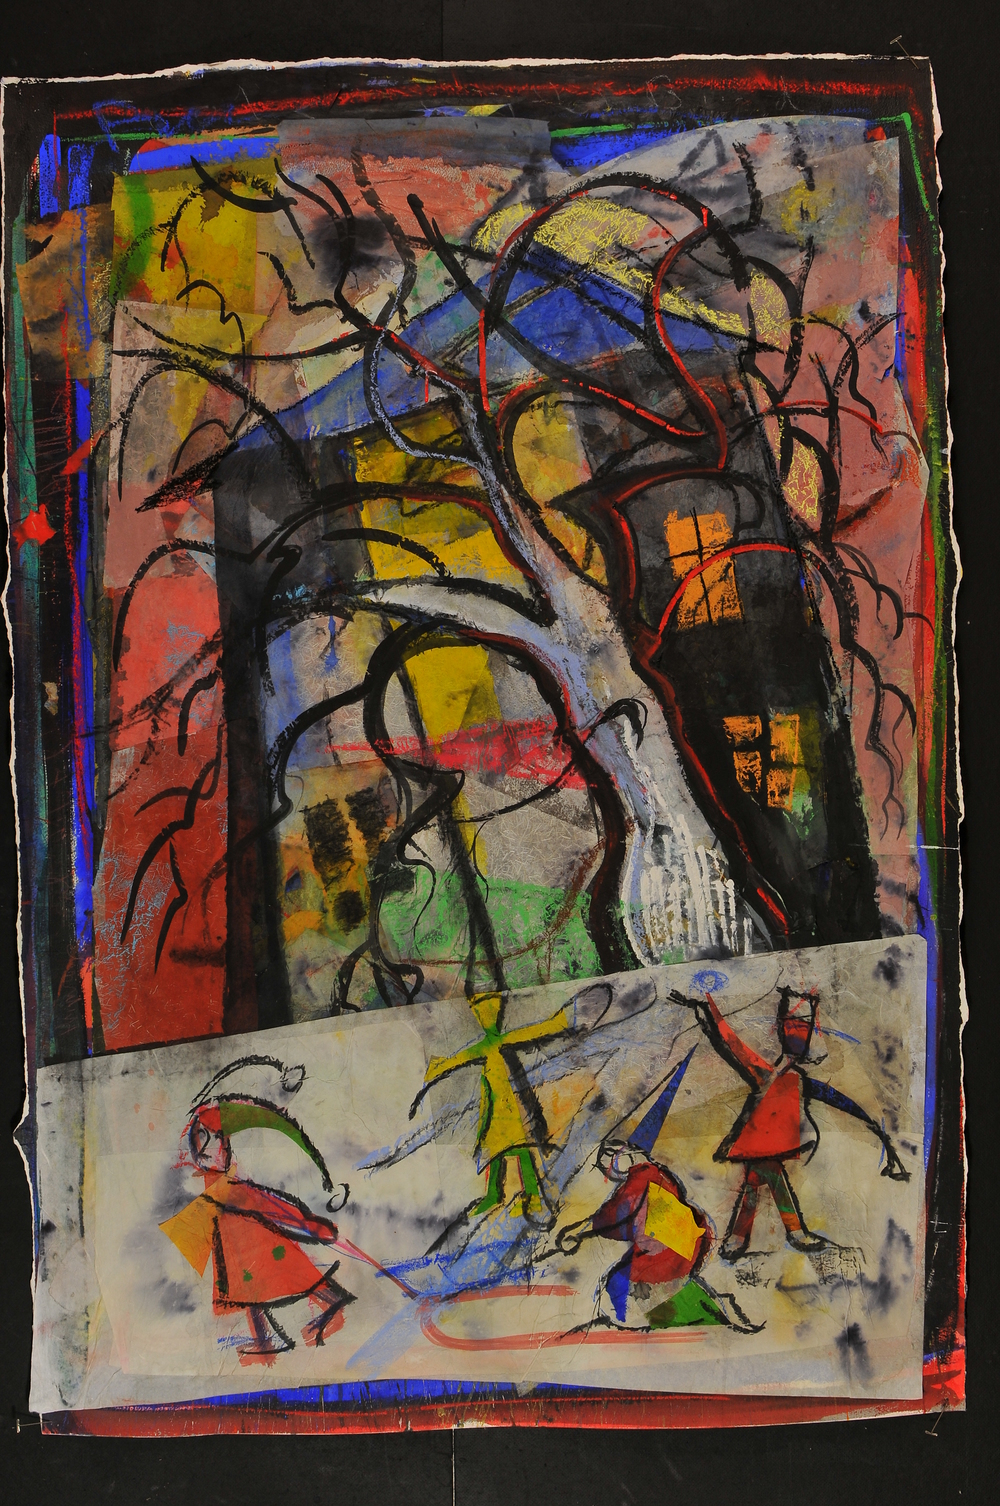 "Sledding by the Big Tree - 2009 - Mixed media - 53 x 36"" image size"